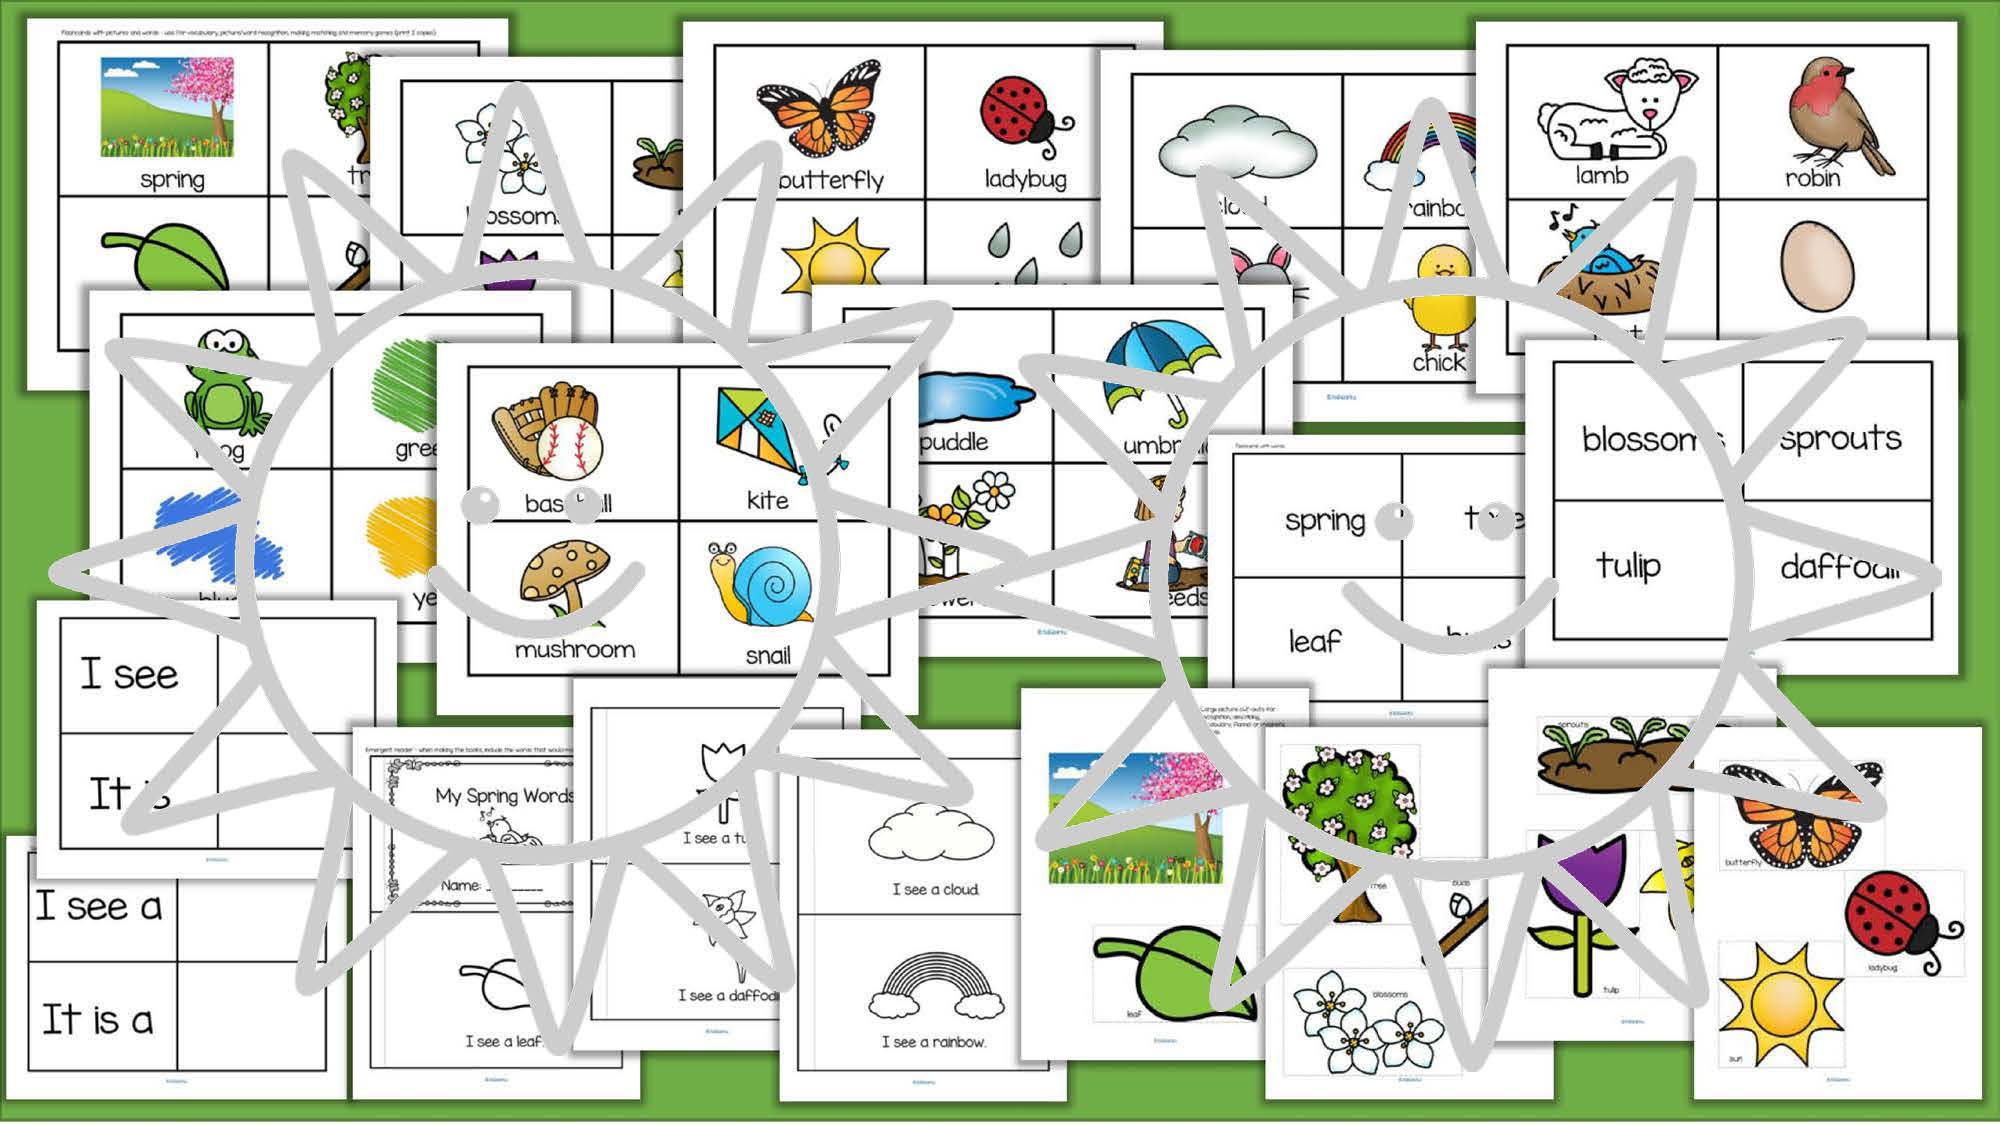 Spring Vocabulary Words Center Amp Group Activities For Preschool Amp Kindergarten